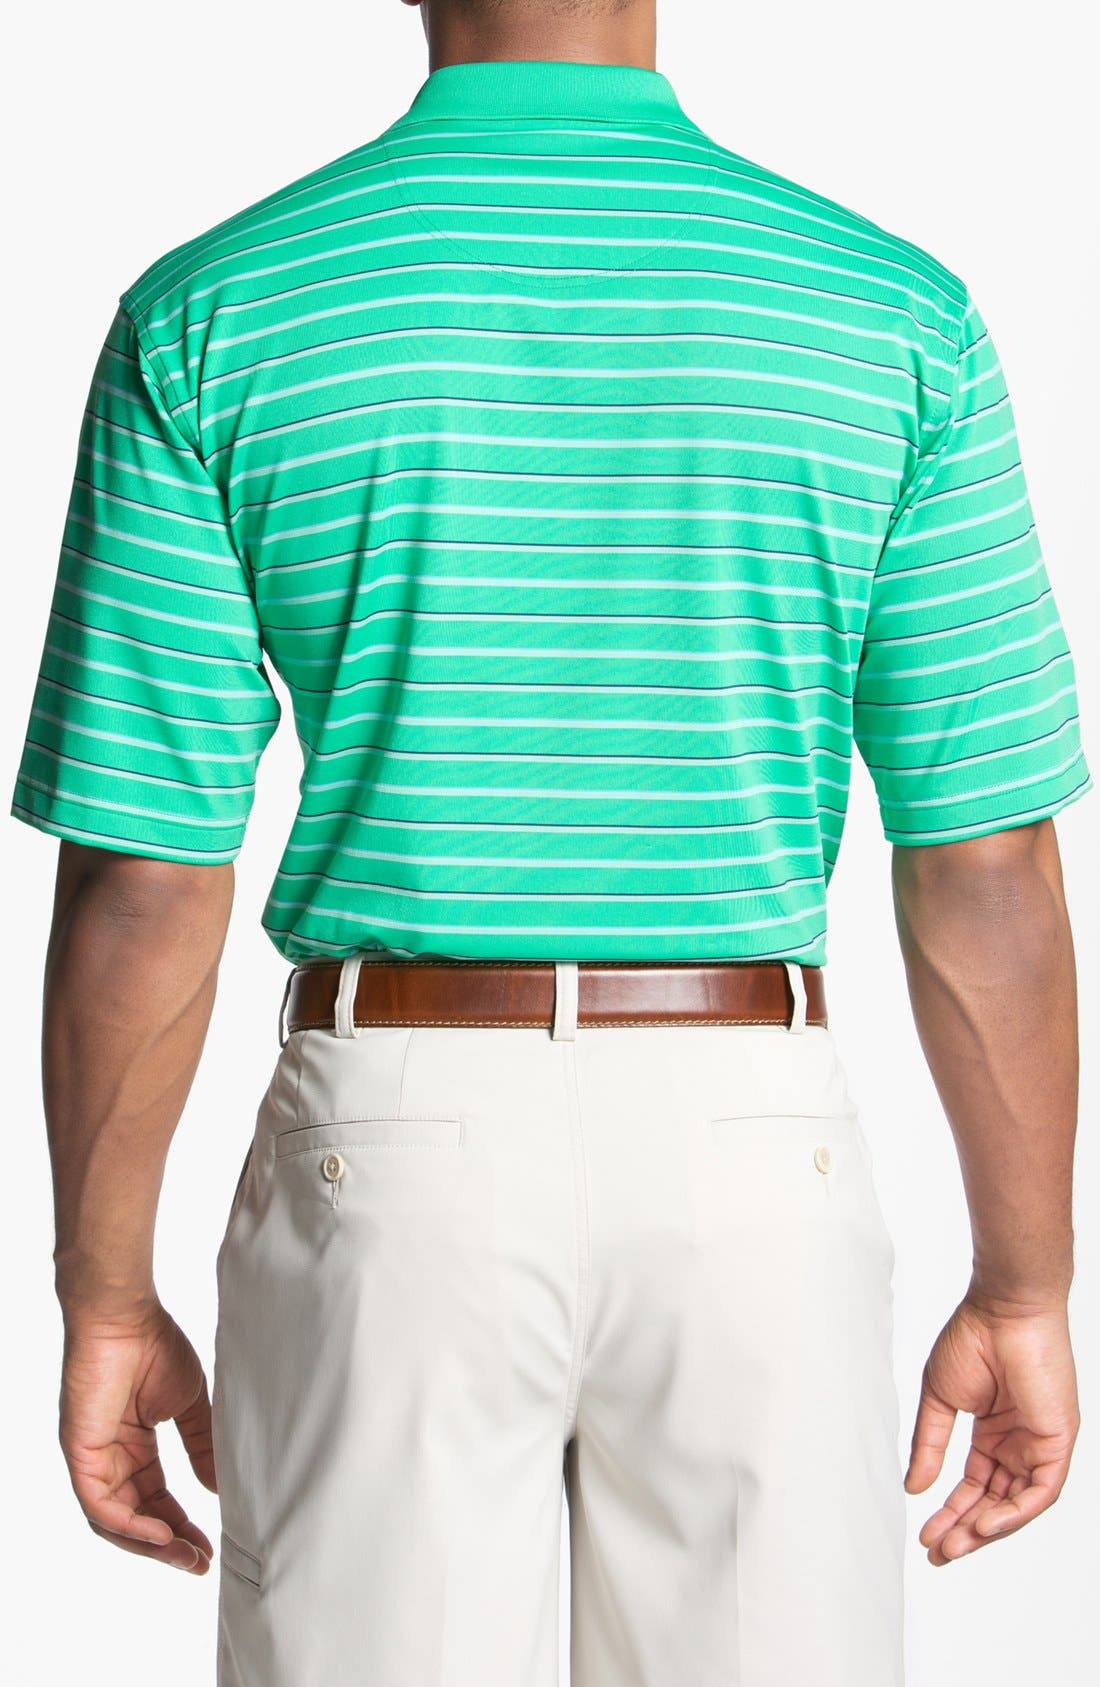 Alternate Image 2  - Lone Cypress Pebble Beach Knit Polo